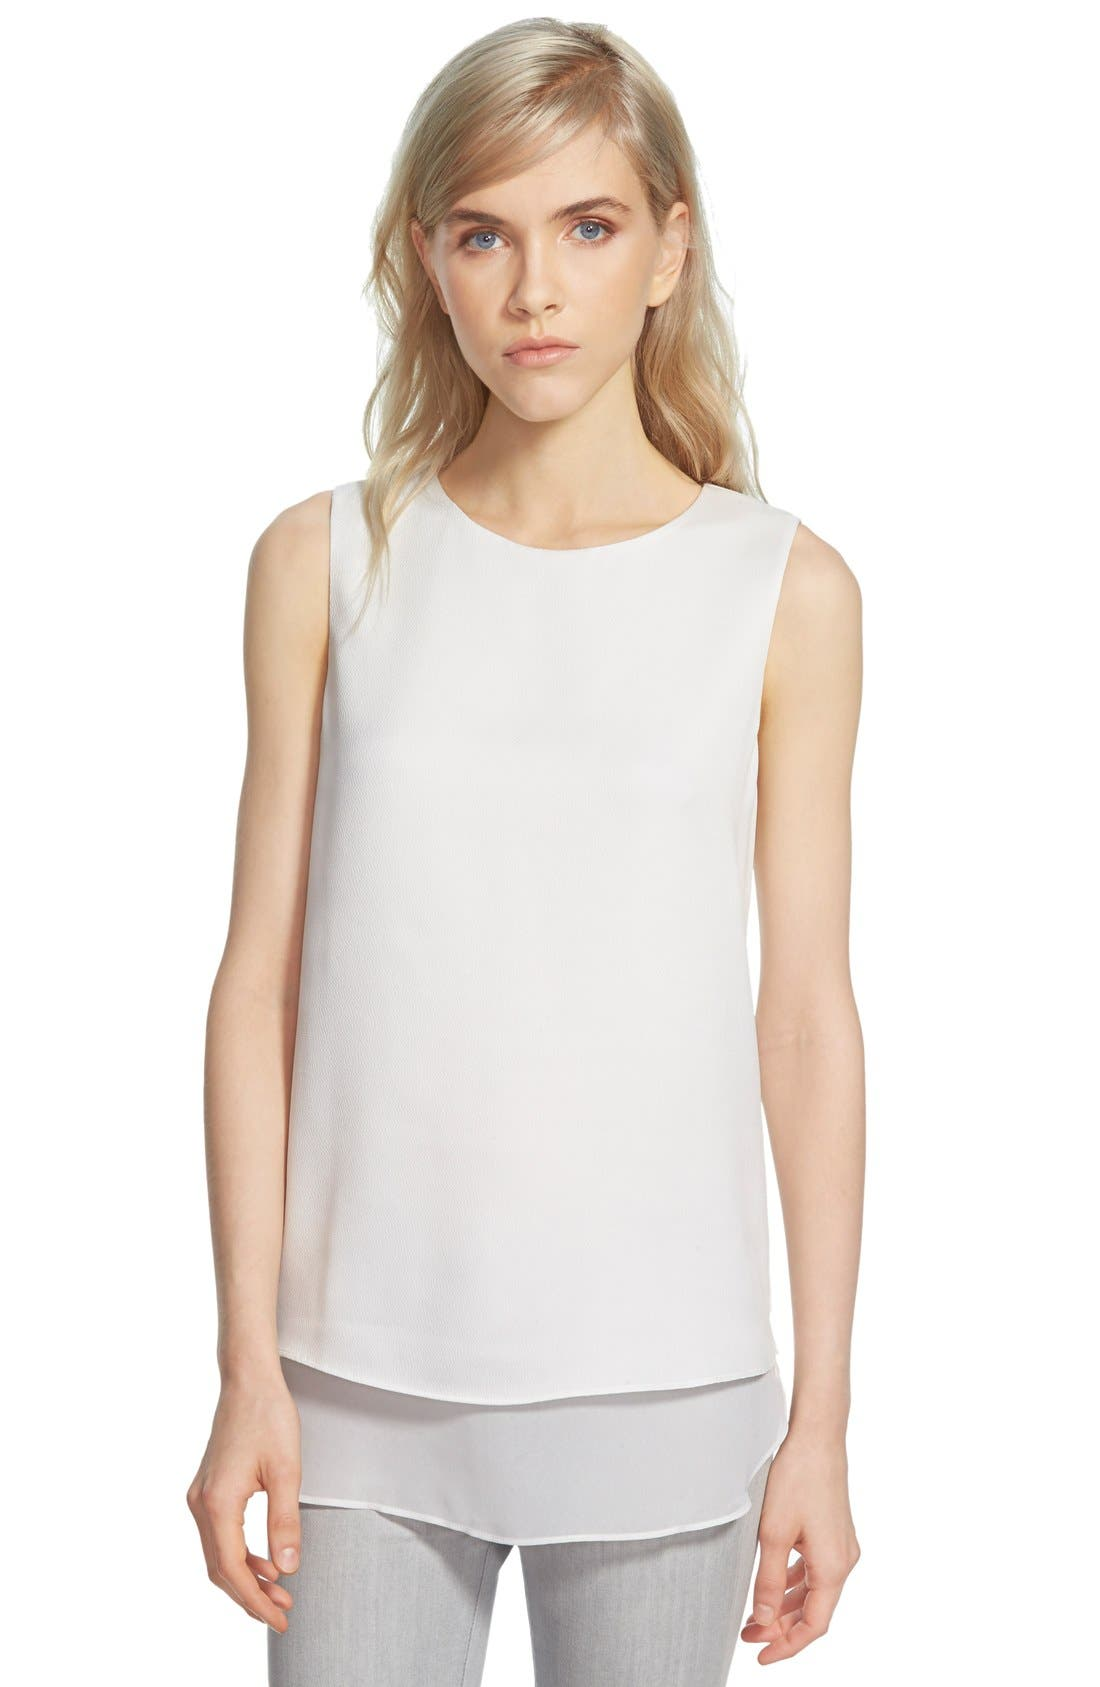 COOPER & ELLA Textured Sleeveless Top